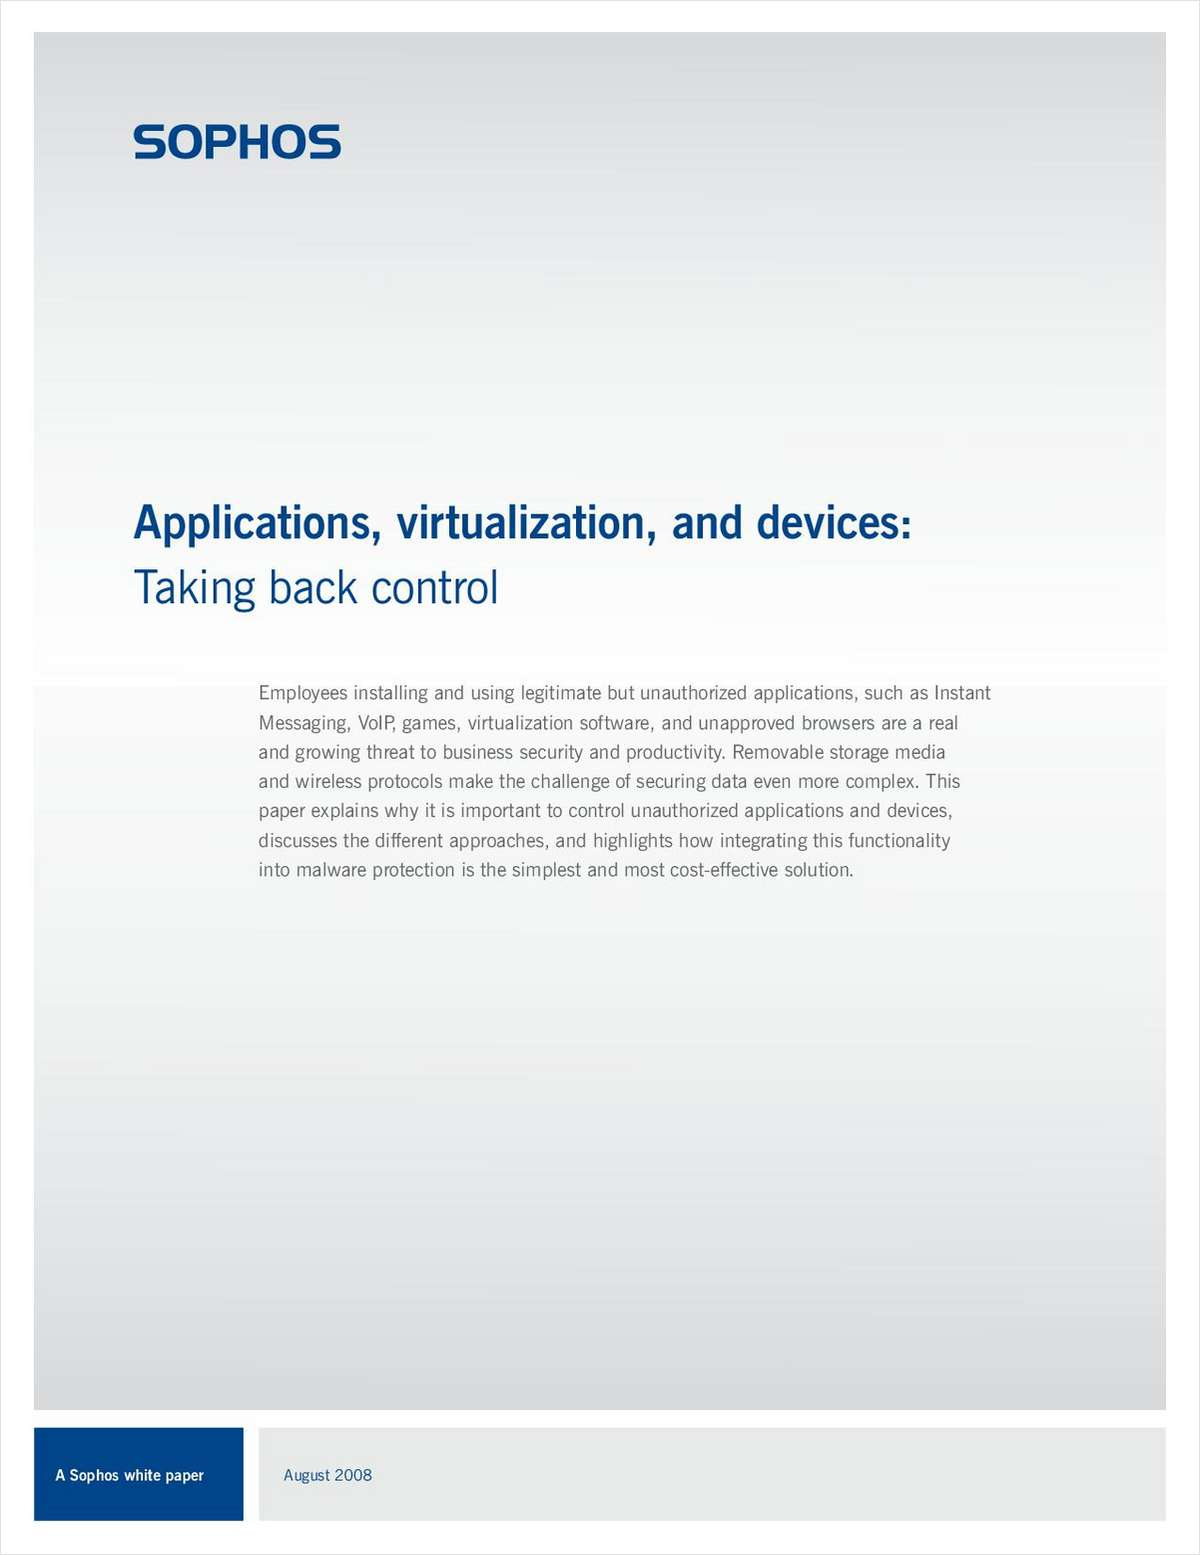 Applications, Virtualization and Devices: Taking Back Control